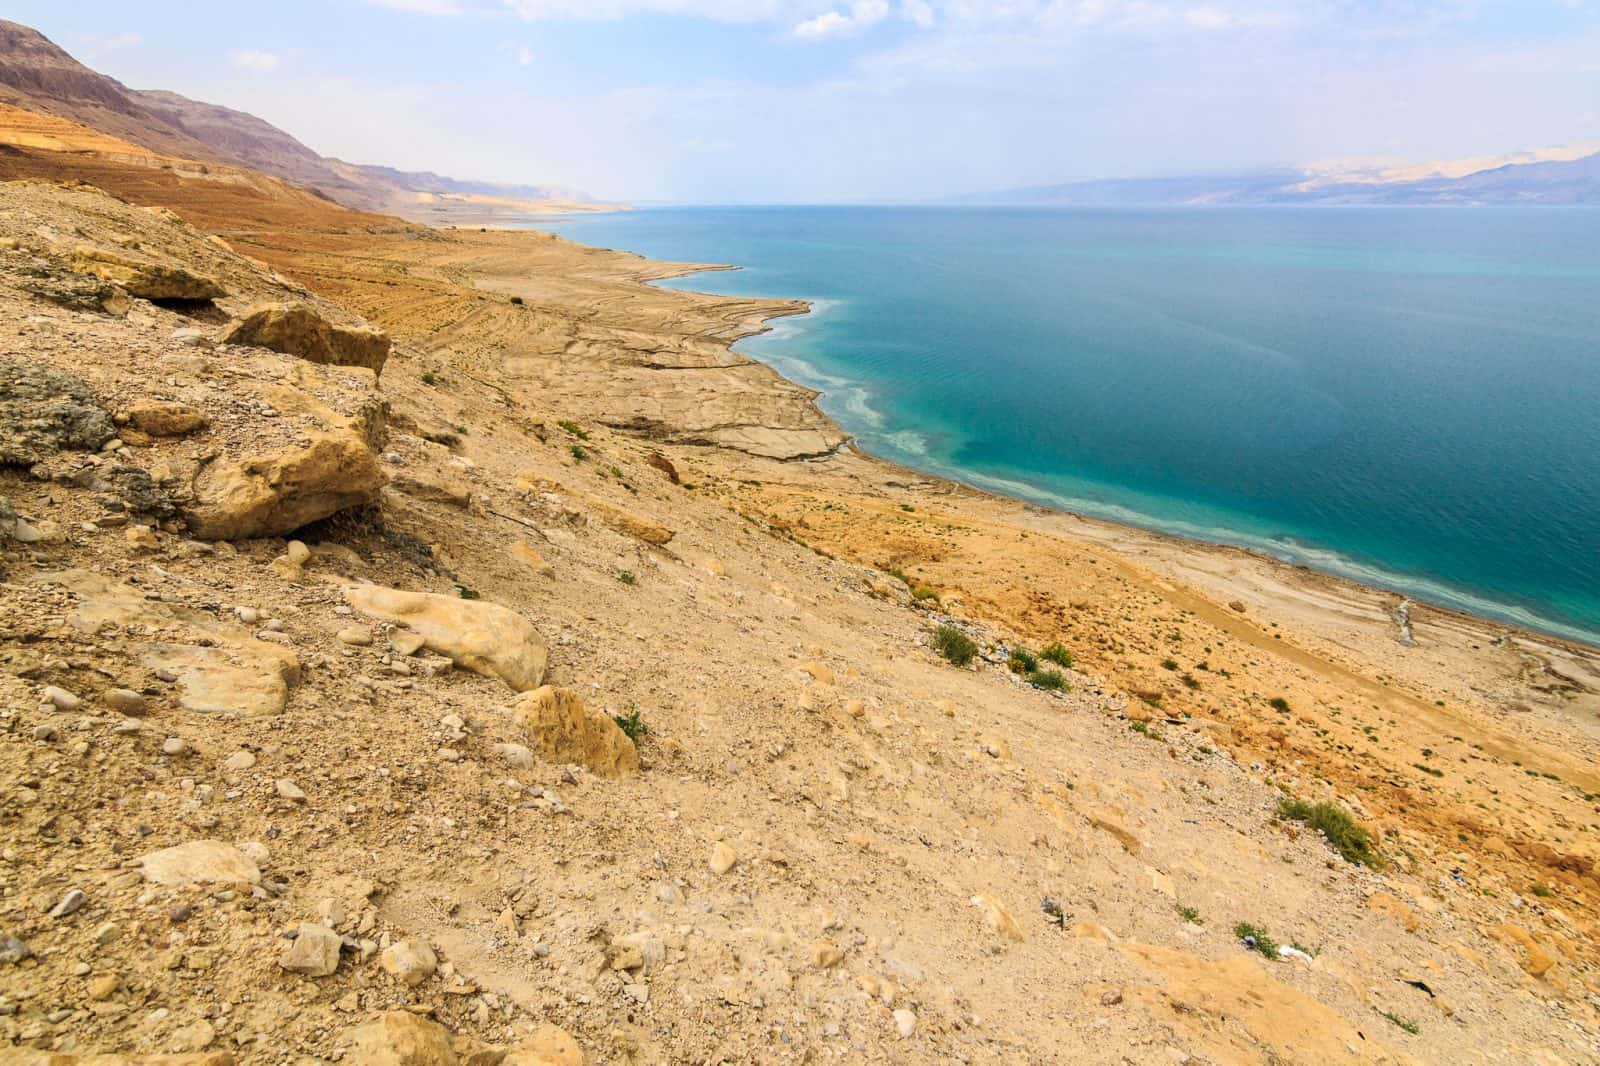 The Dead Sea is just one of the many beautiful things you'll when doing a work abroad program in Israel. Working abroad around the world is an amazing experience.